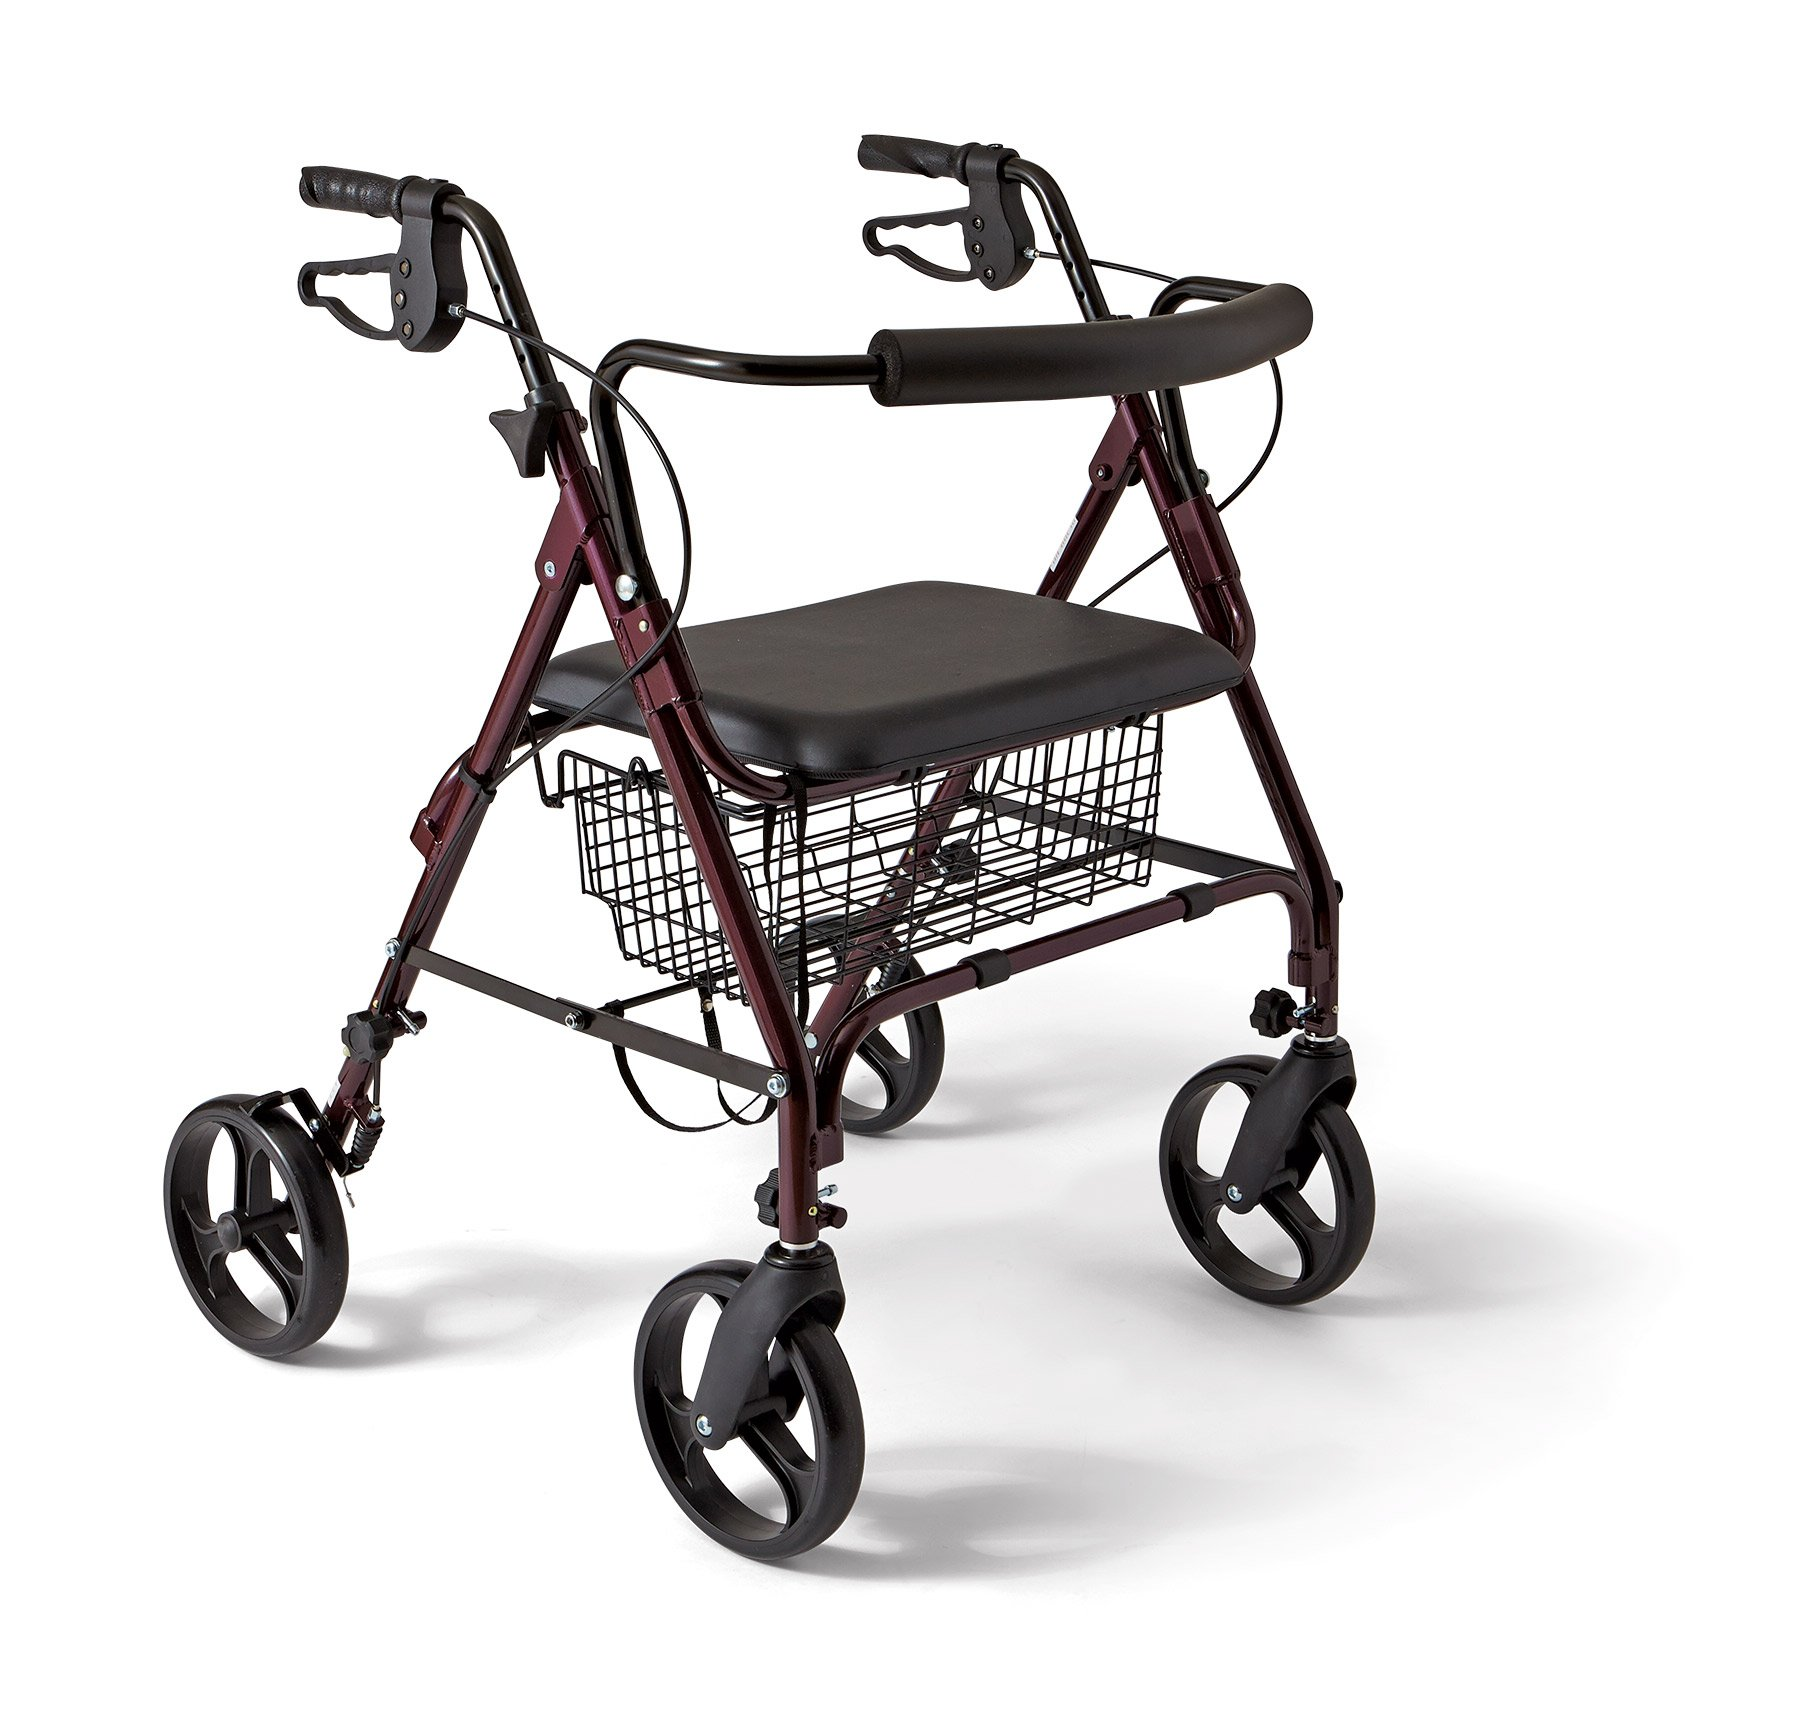 Medline Heavy Duty Bariatric Aluminum Mobility Rollator Walker with 8 Inch Wheels, 400 lbs Capacity by Medline